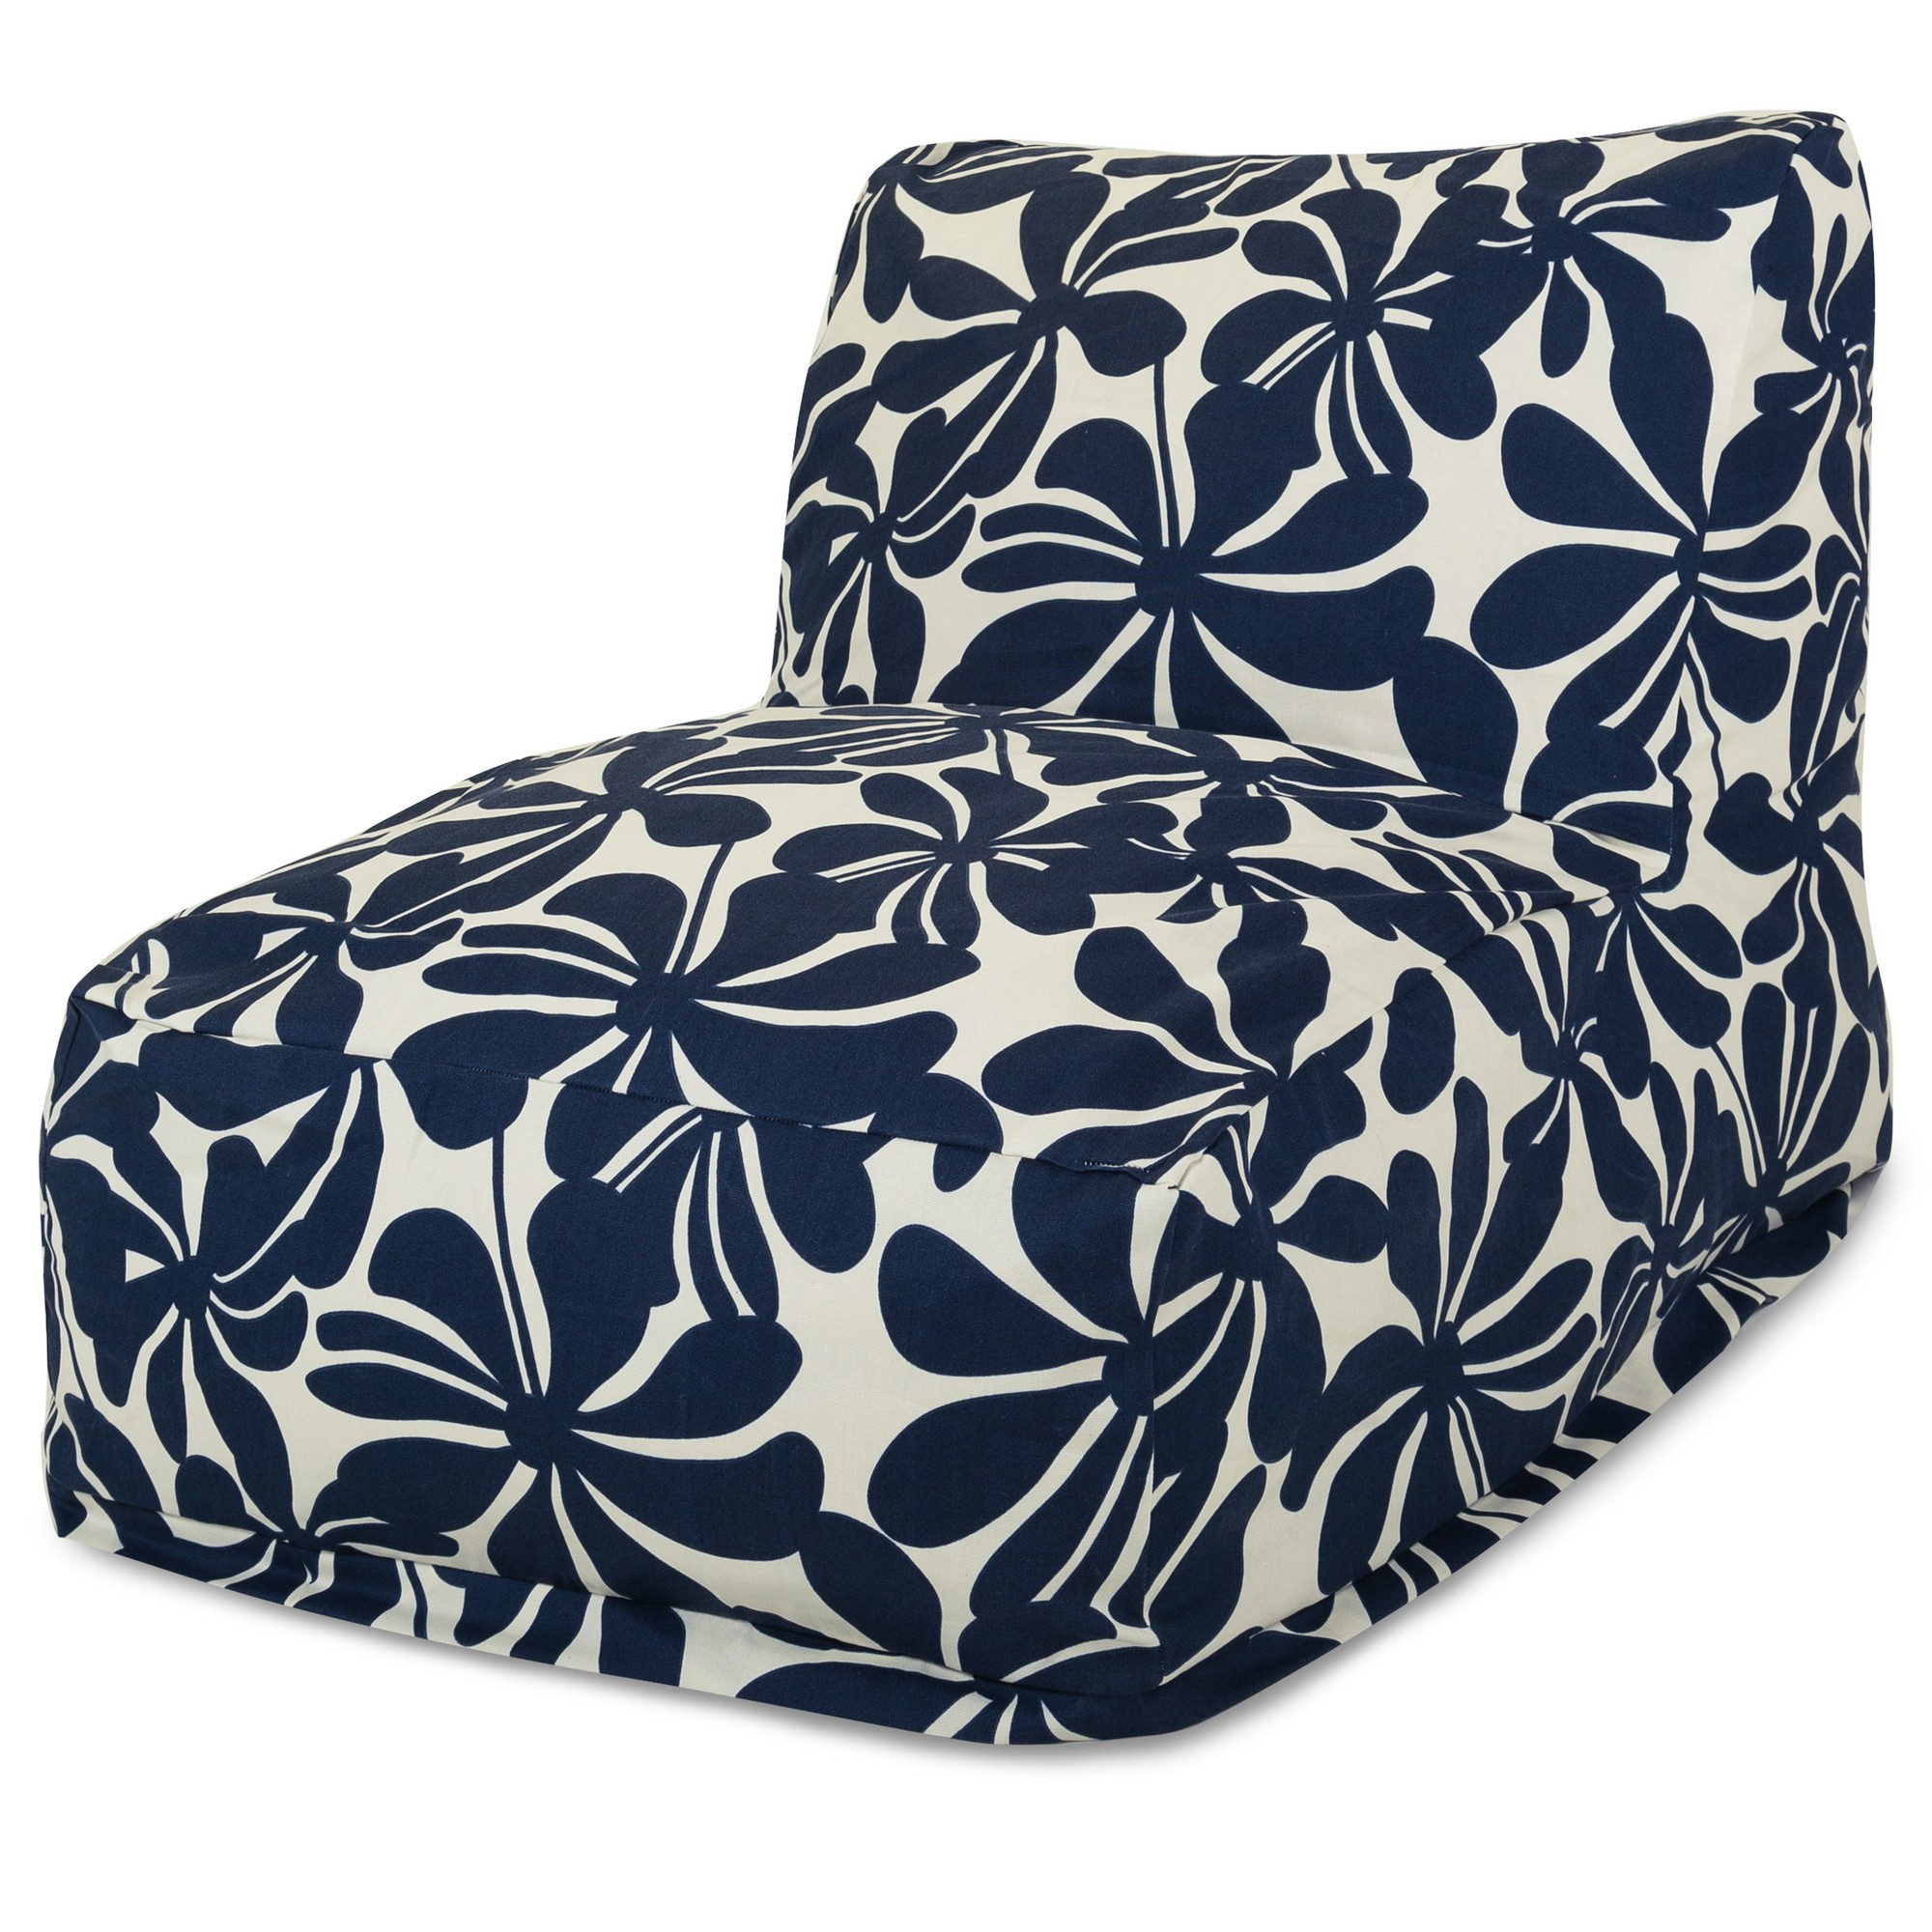 Majestic Home Goods Indoor Outdoor Navy Plantation Chair Lounger Bean Bag 36 in L x 27 in W x 24 in H